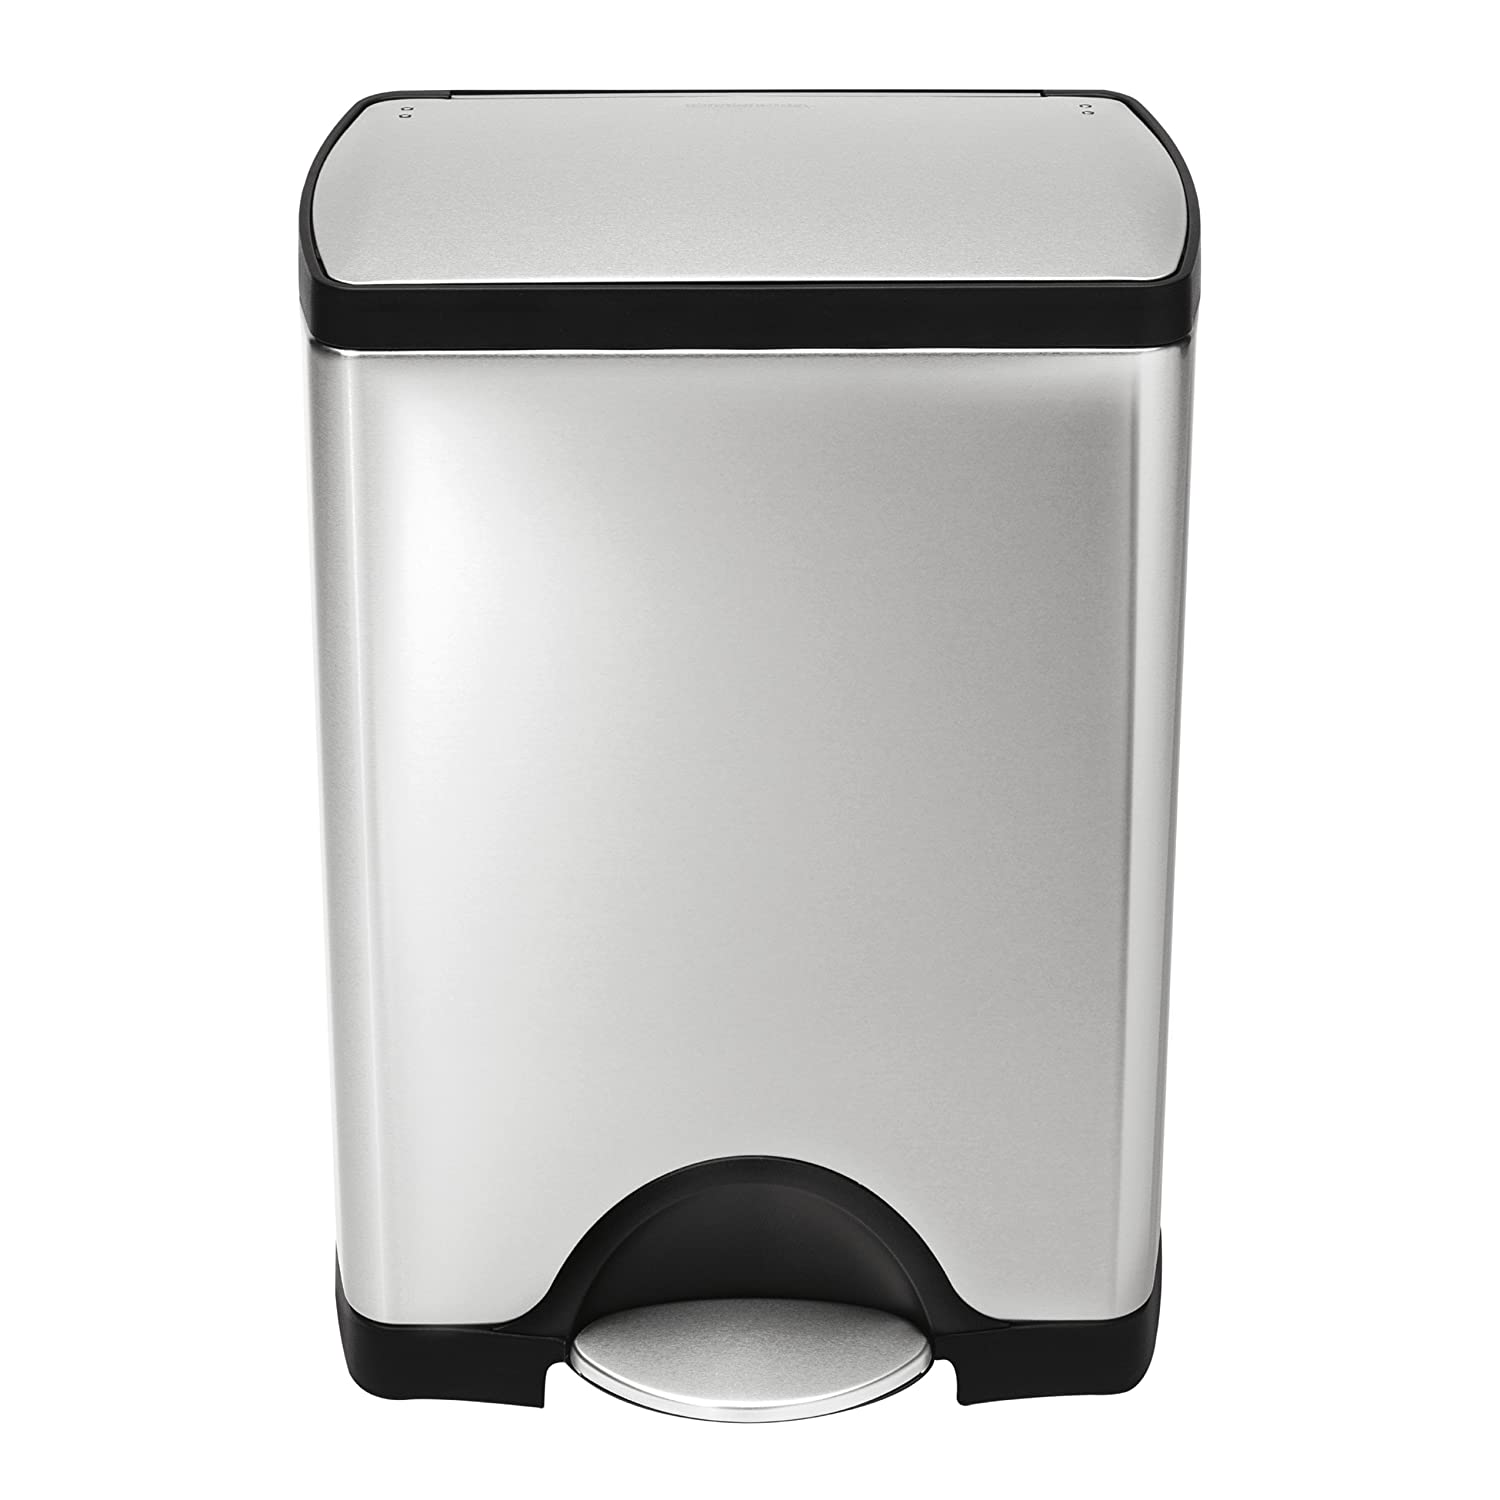 Black Kitchen Trash Cans All You Need To Know About Finding The Best Kitchen Trash Can